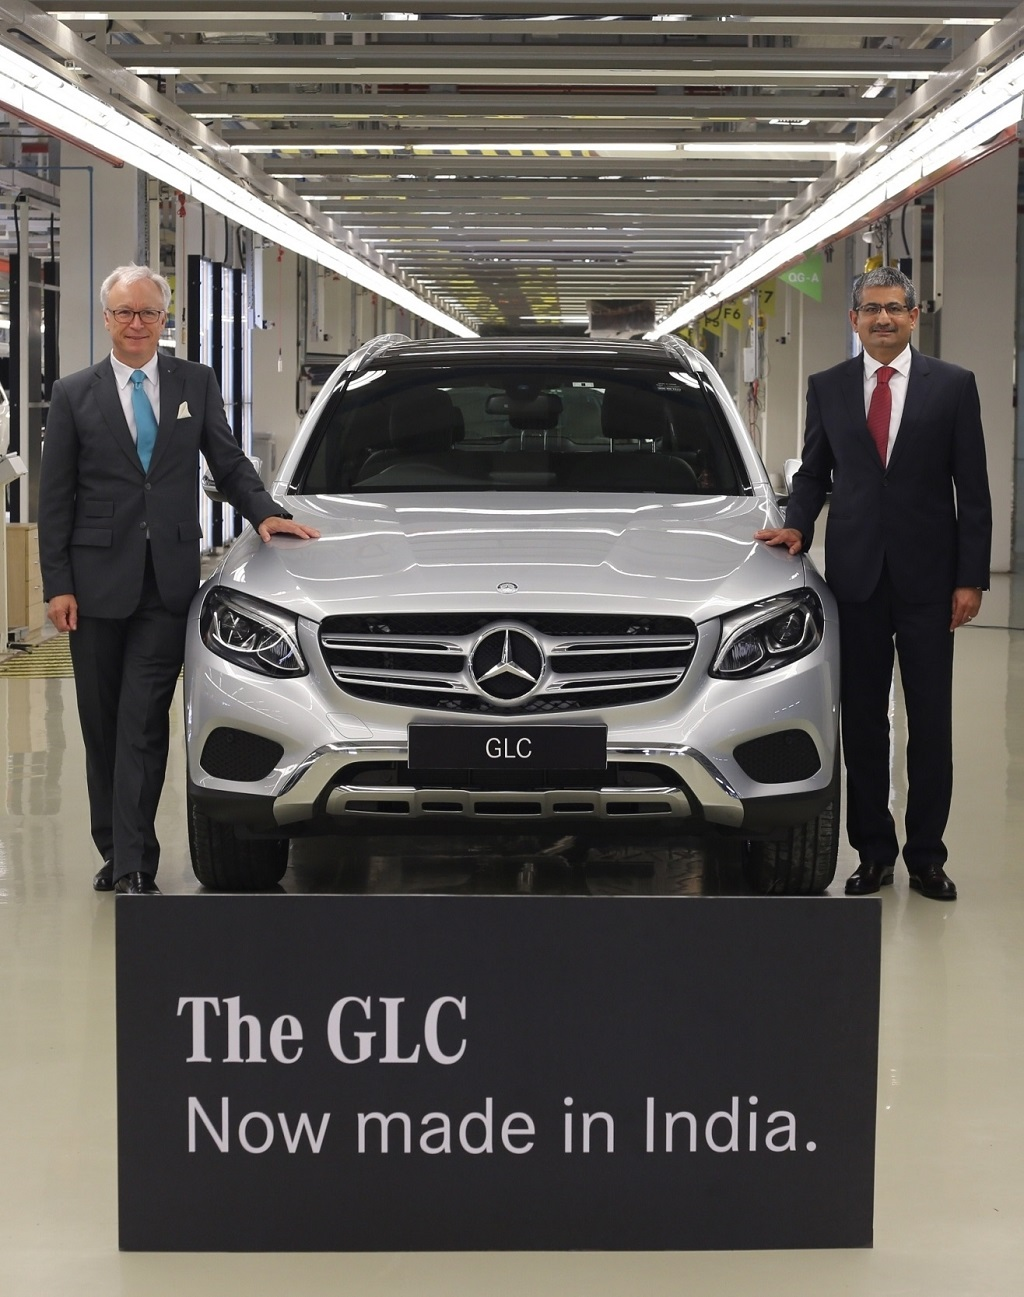 Mercedes Benz Launches The Made In India Glc Adds The